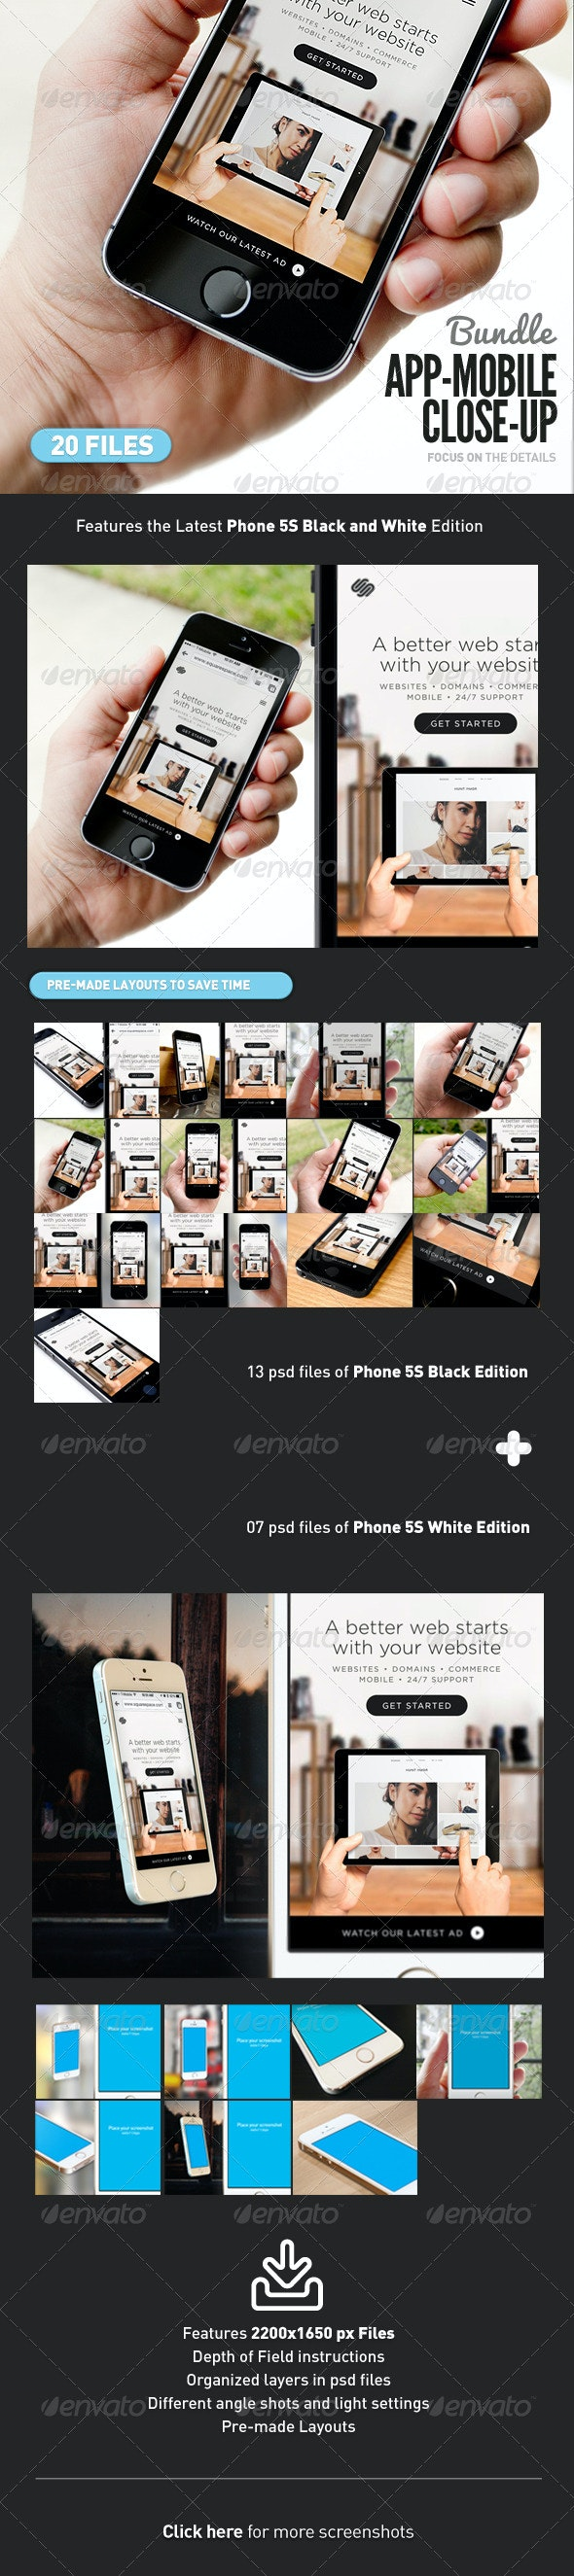 App UI Close-Up Mock-Up 5s Bundle - Mobile Displays